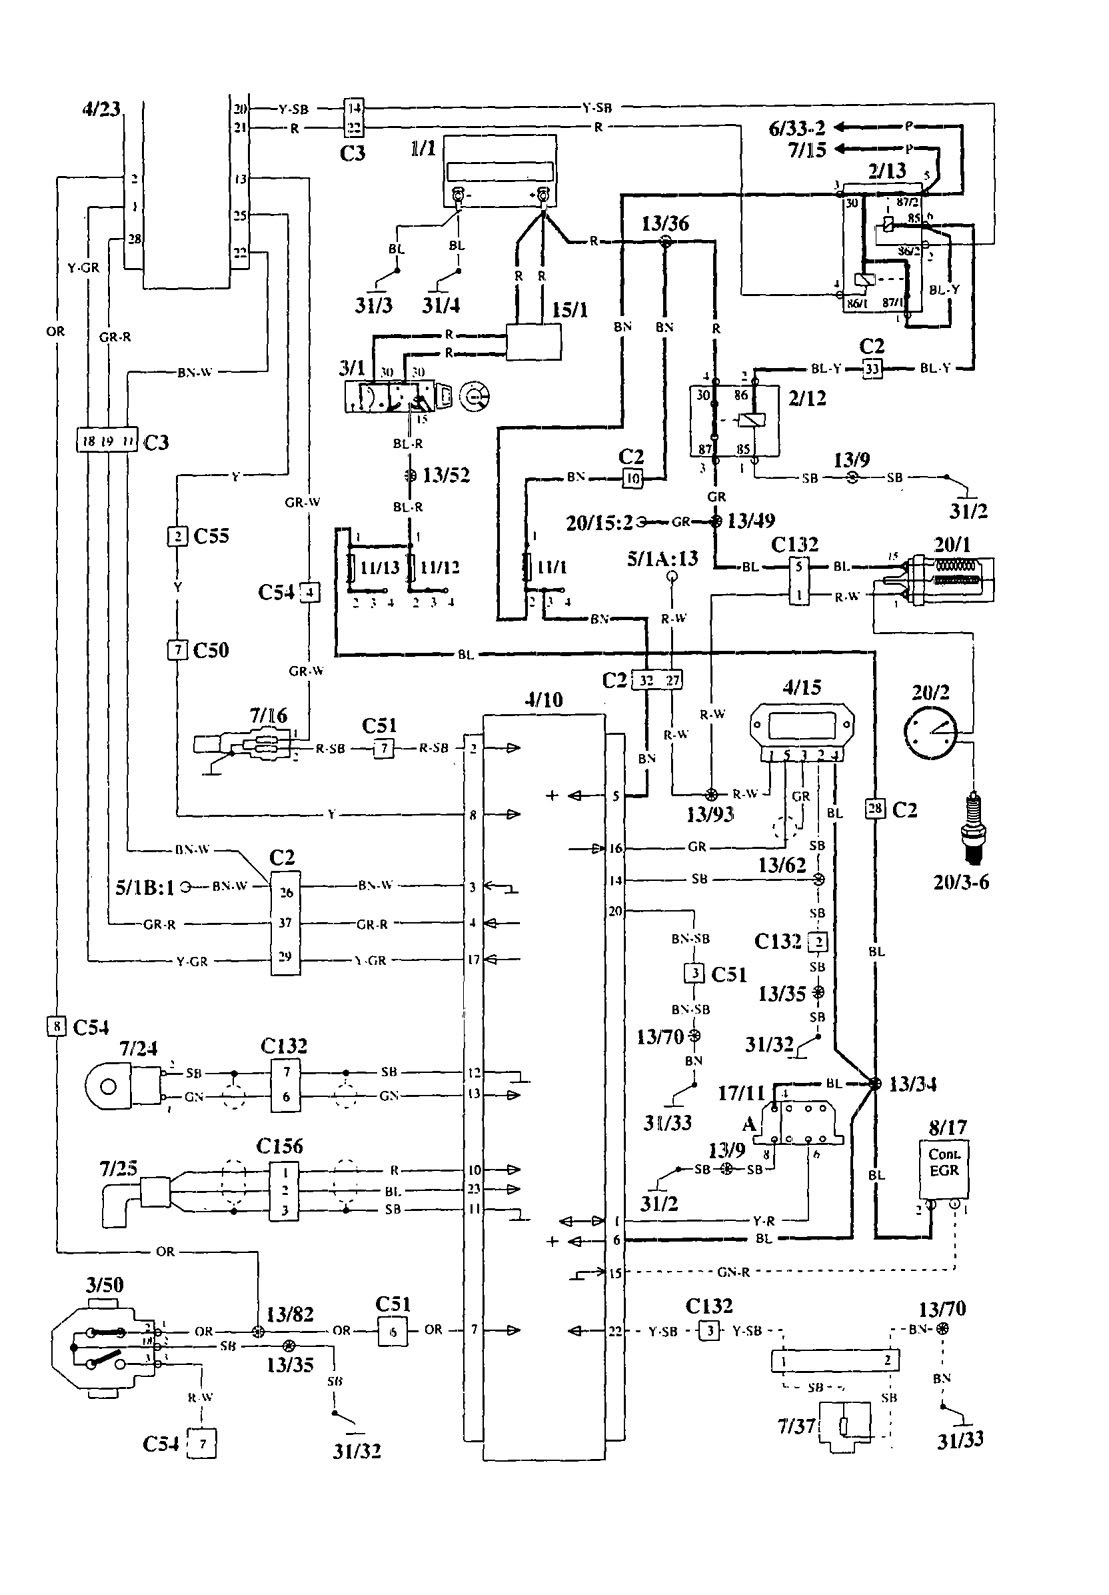 th5220d1003 wiring diagram